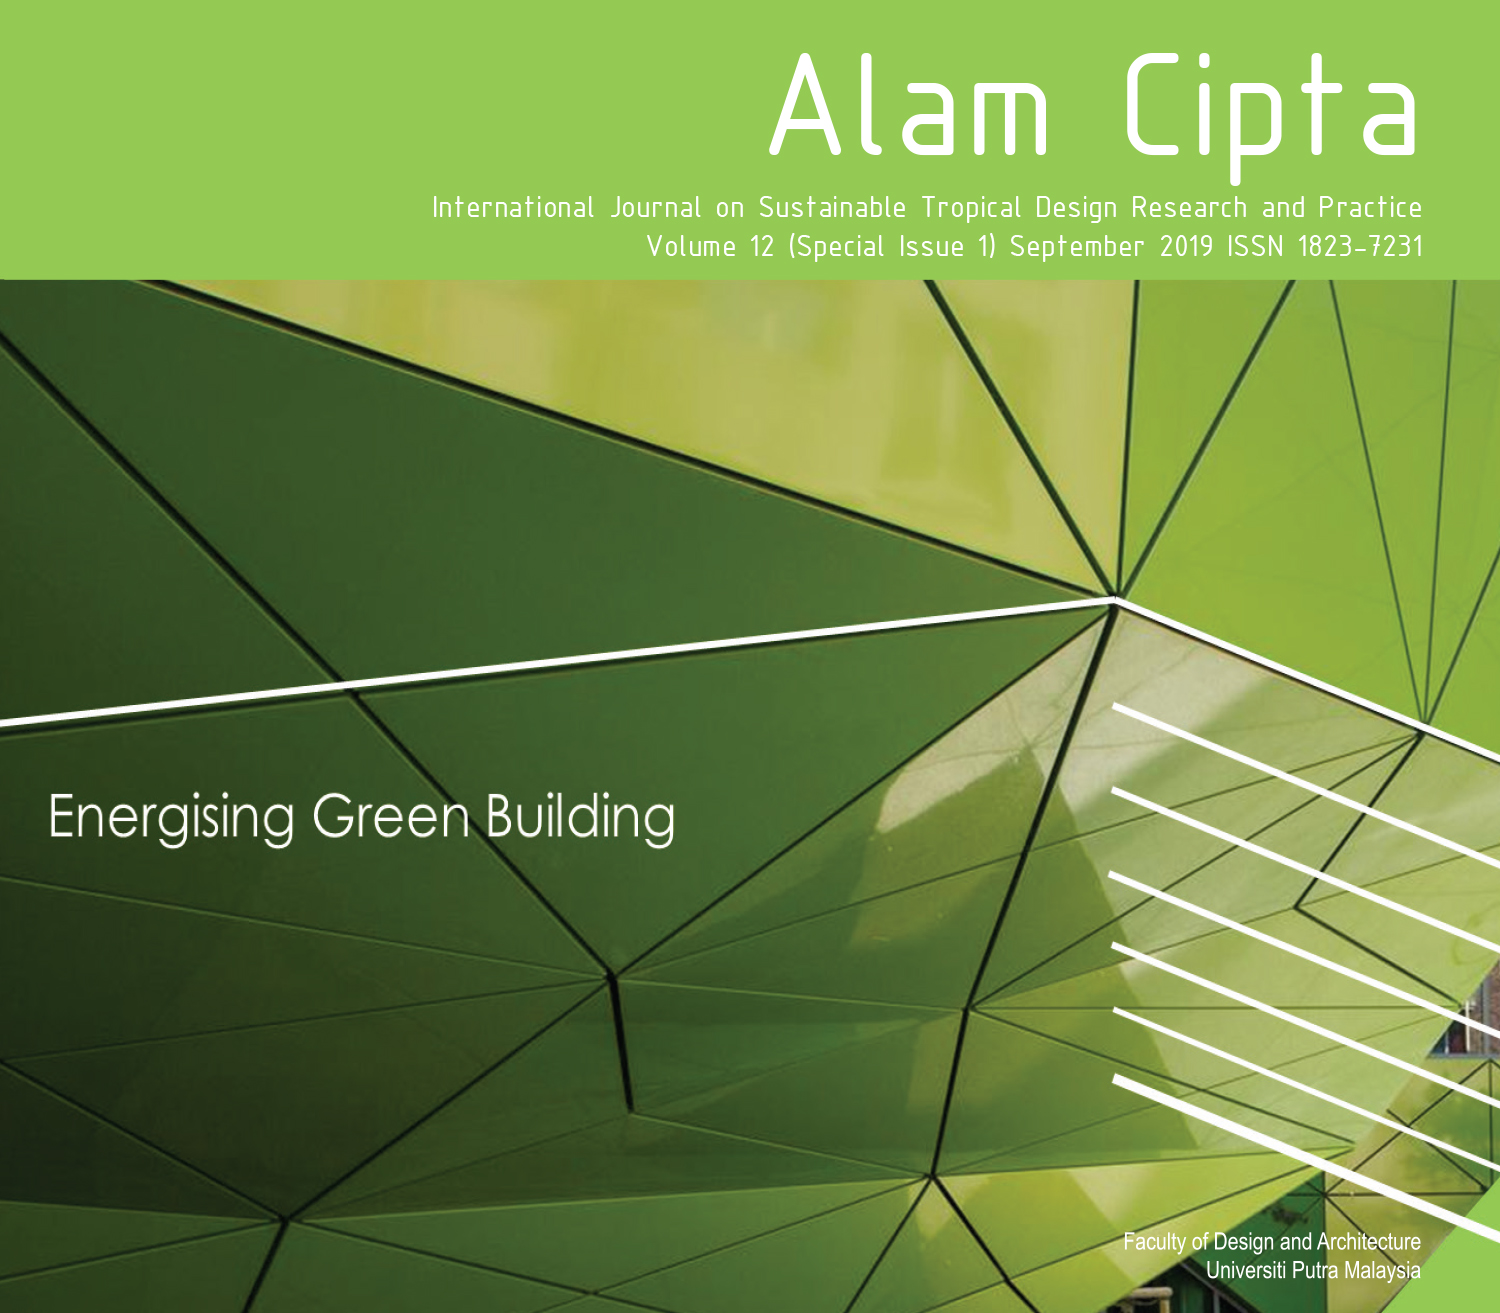 ALAM CIPTA  Vol 12 (Special Issue 1) Sept 2019: Energising Green Building